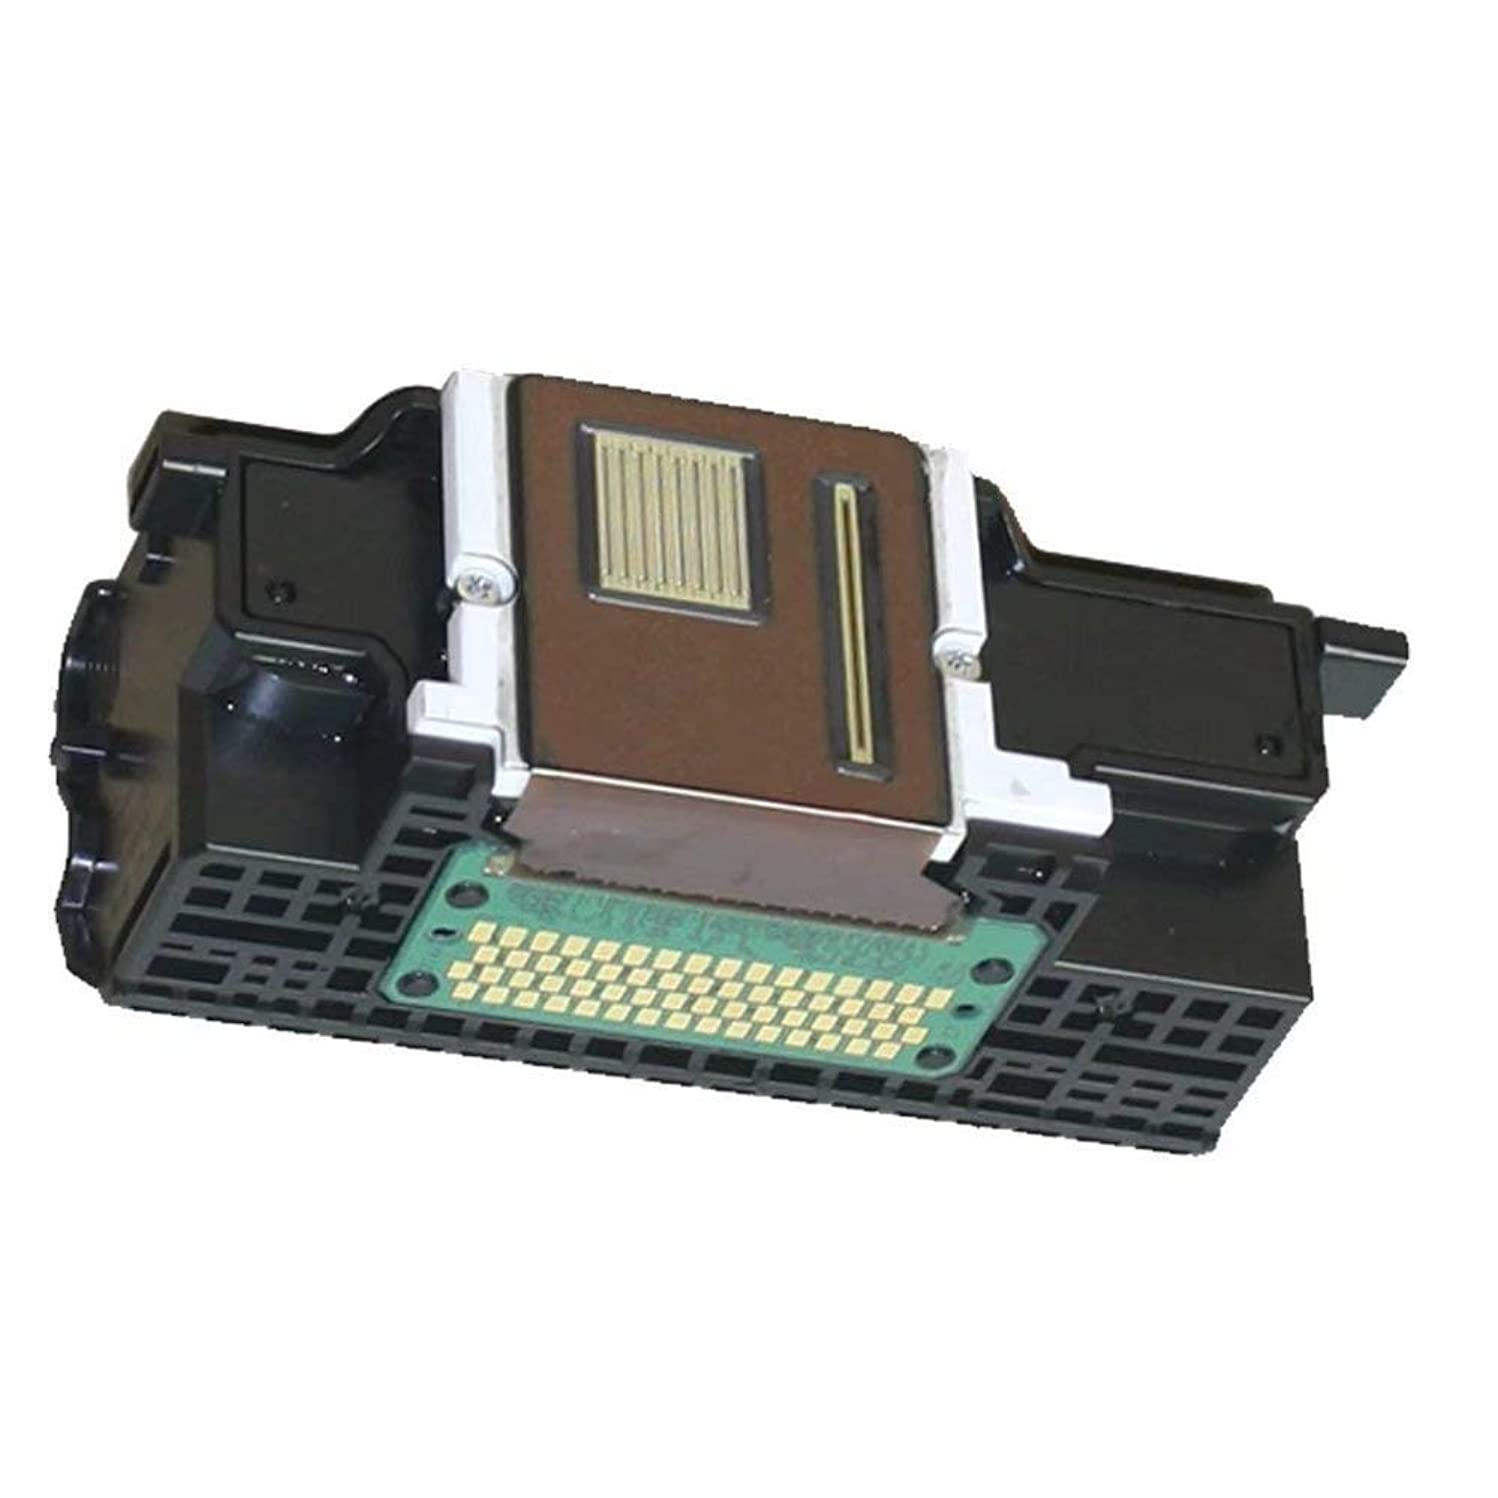 OGOUGUAN Refurbished Printhead QY6-0078 for Canon MP990